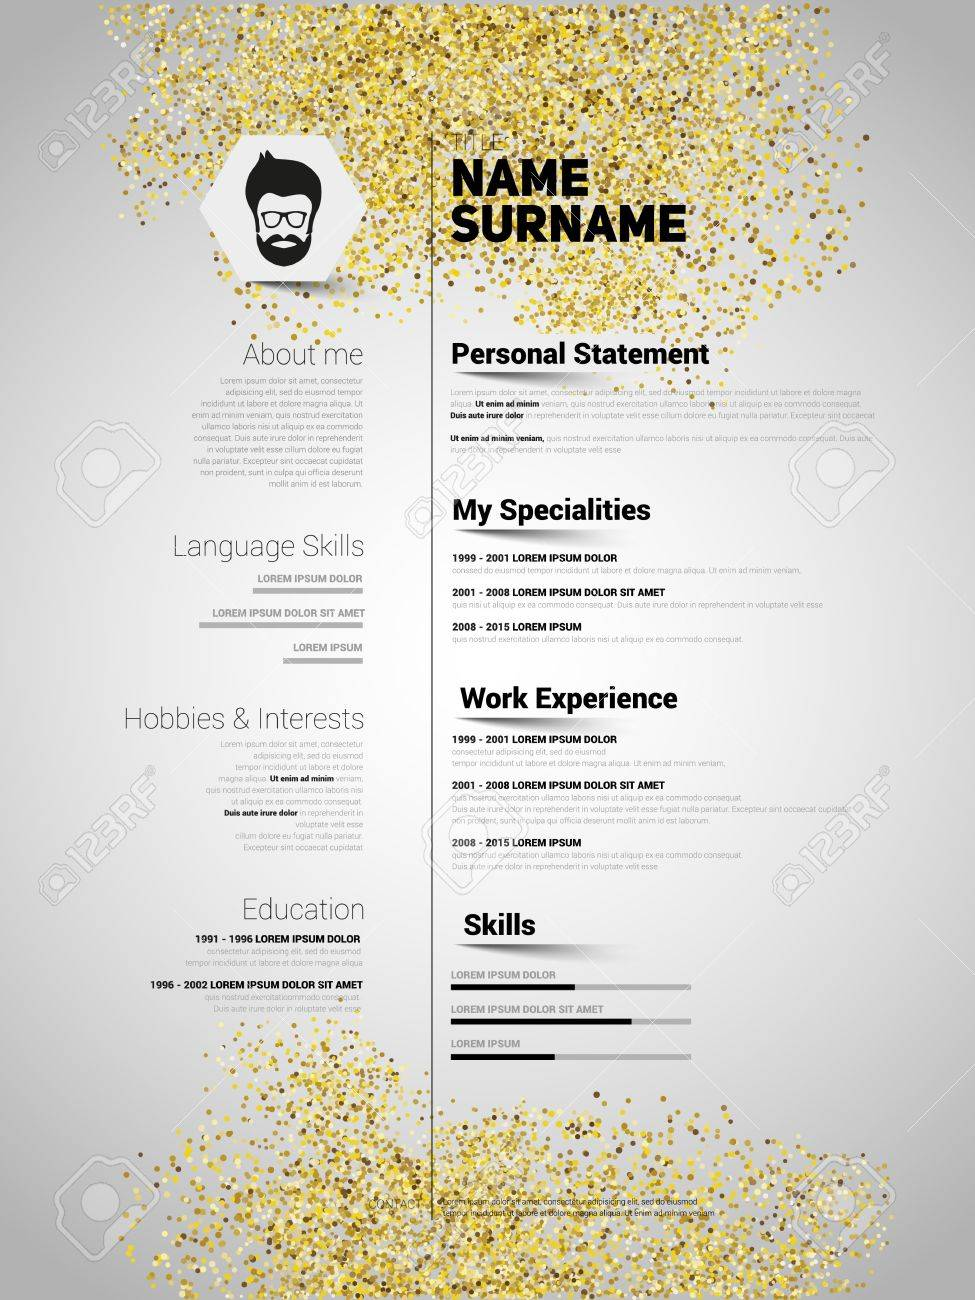 Resume Minimalist CV In Gold Glitter Style  Resume Template With     Resume Minimalist CV in gold glitter style  Resume template with simple  design  company application